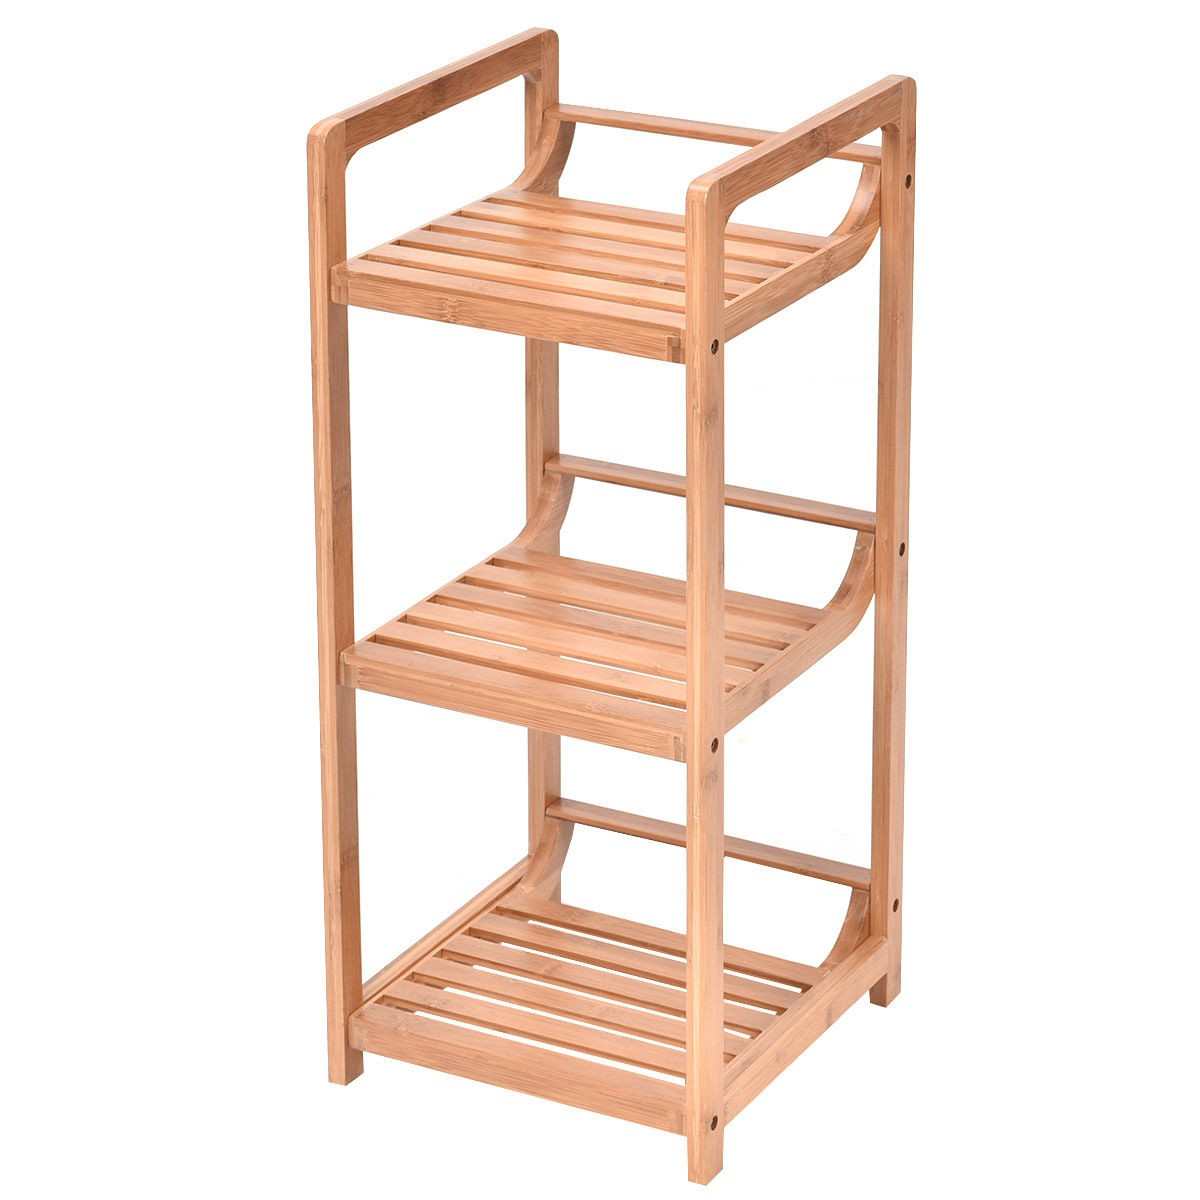 3 tier bathroom shelf bamboo bath storage space saver organizer shelves rack